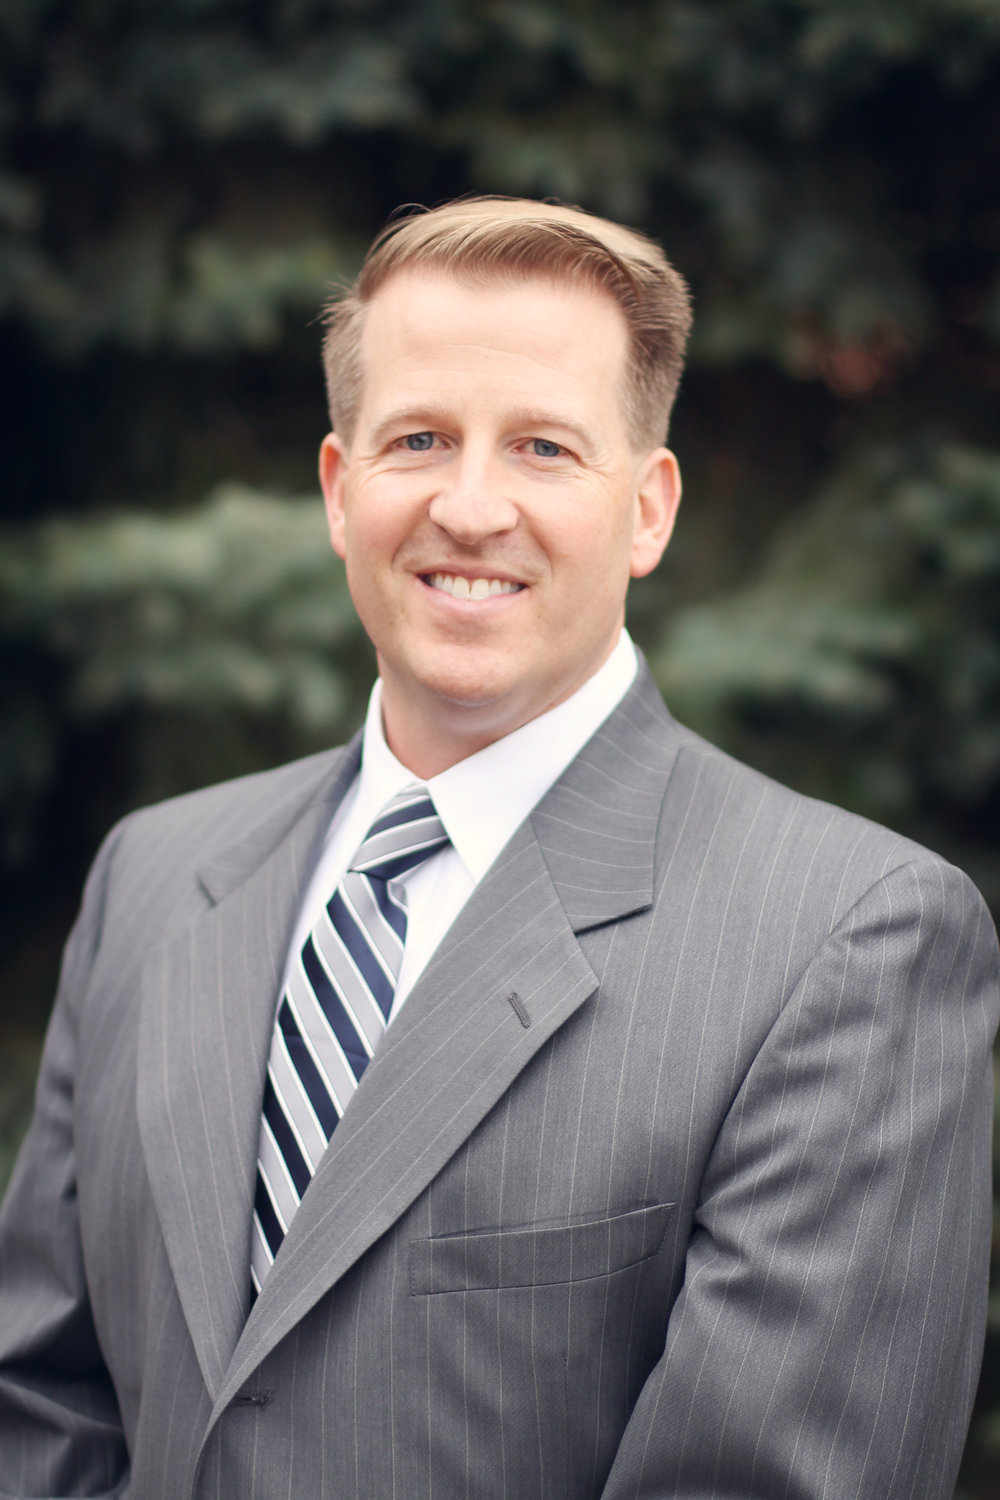 PAUL BENNETT - Sr. Financial Planner